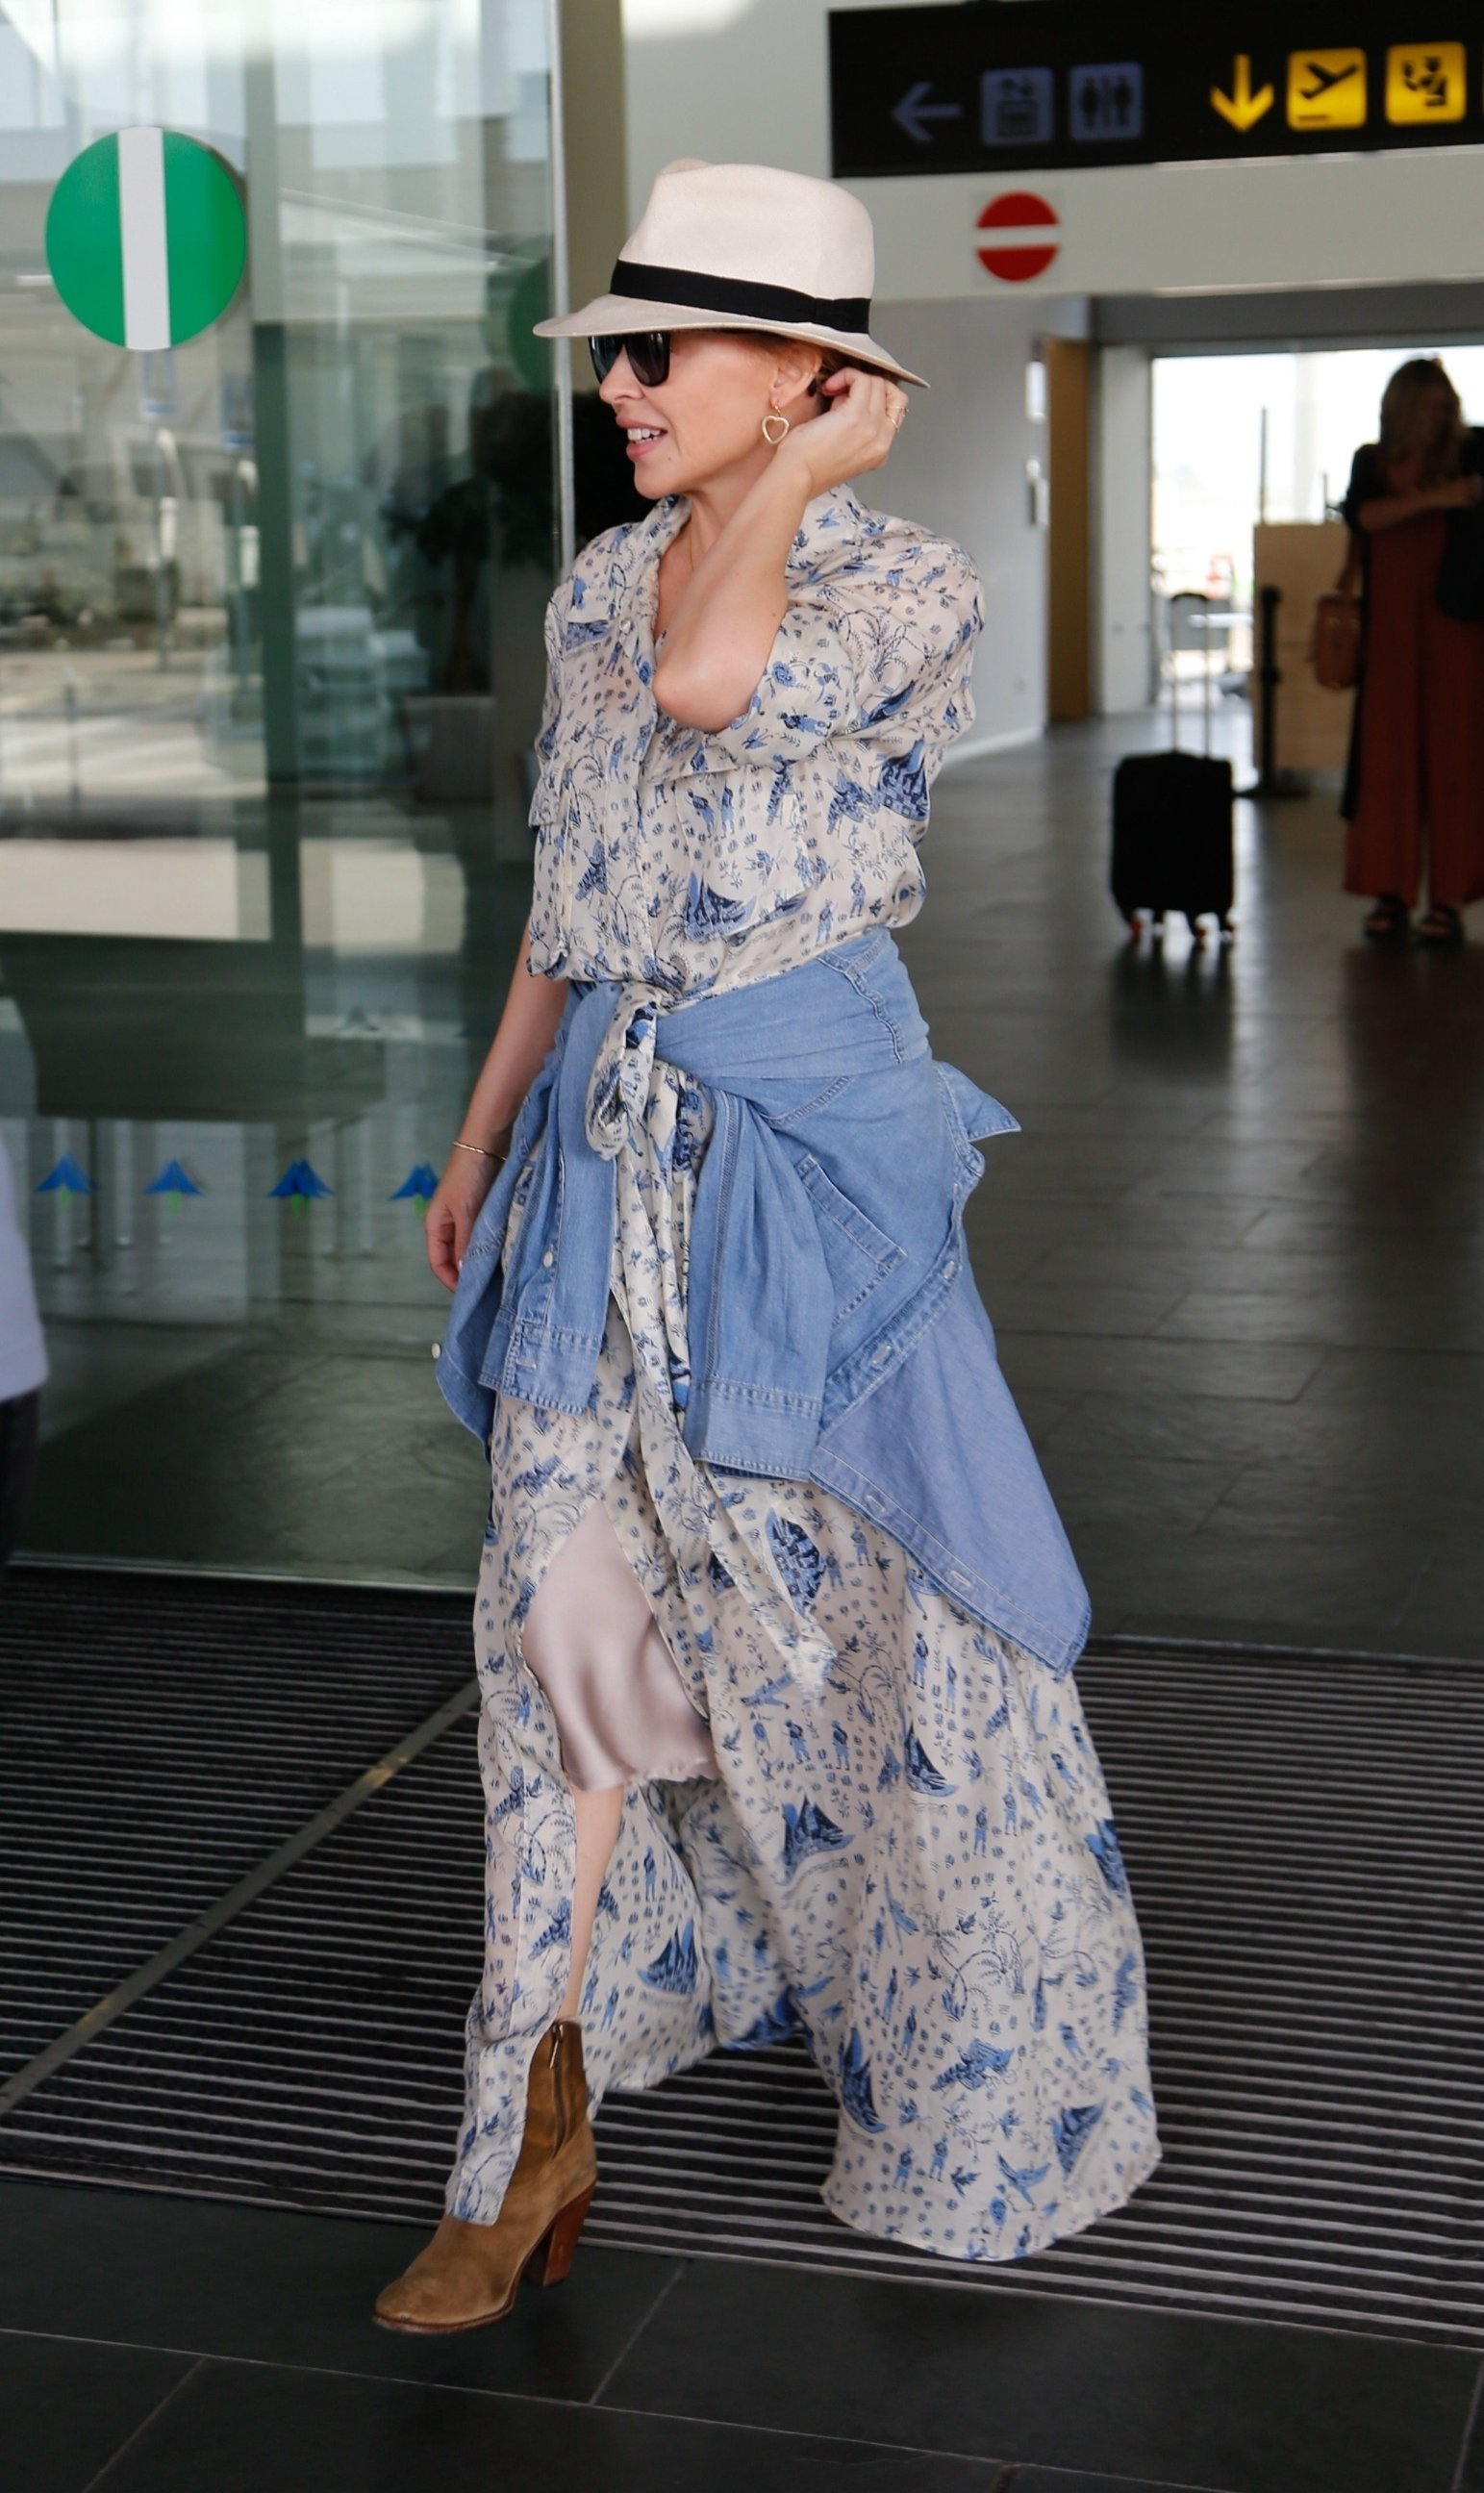 Barcelona, SPAIN  - *EXCLUSIVE*  - Australian popstar Kylie Minogue arrives at Barcelona airport ahead of the Festival Cruïlla  BACKGRID UK 6 JULY 2019, Image: 455120128, License: Rights-managed, Restrictions: RIGHTS: WORLDWIDE EXCEPT IN SPAIN, Model Release: no, Credit line: Profimedia, Backgrid UK